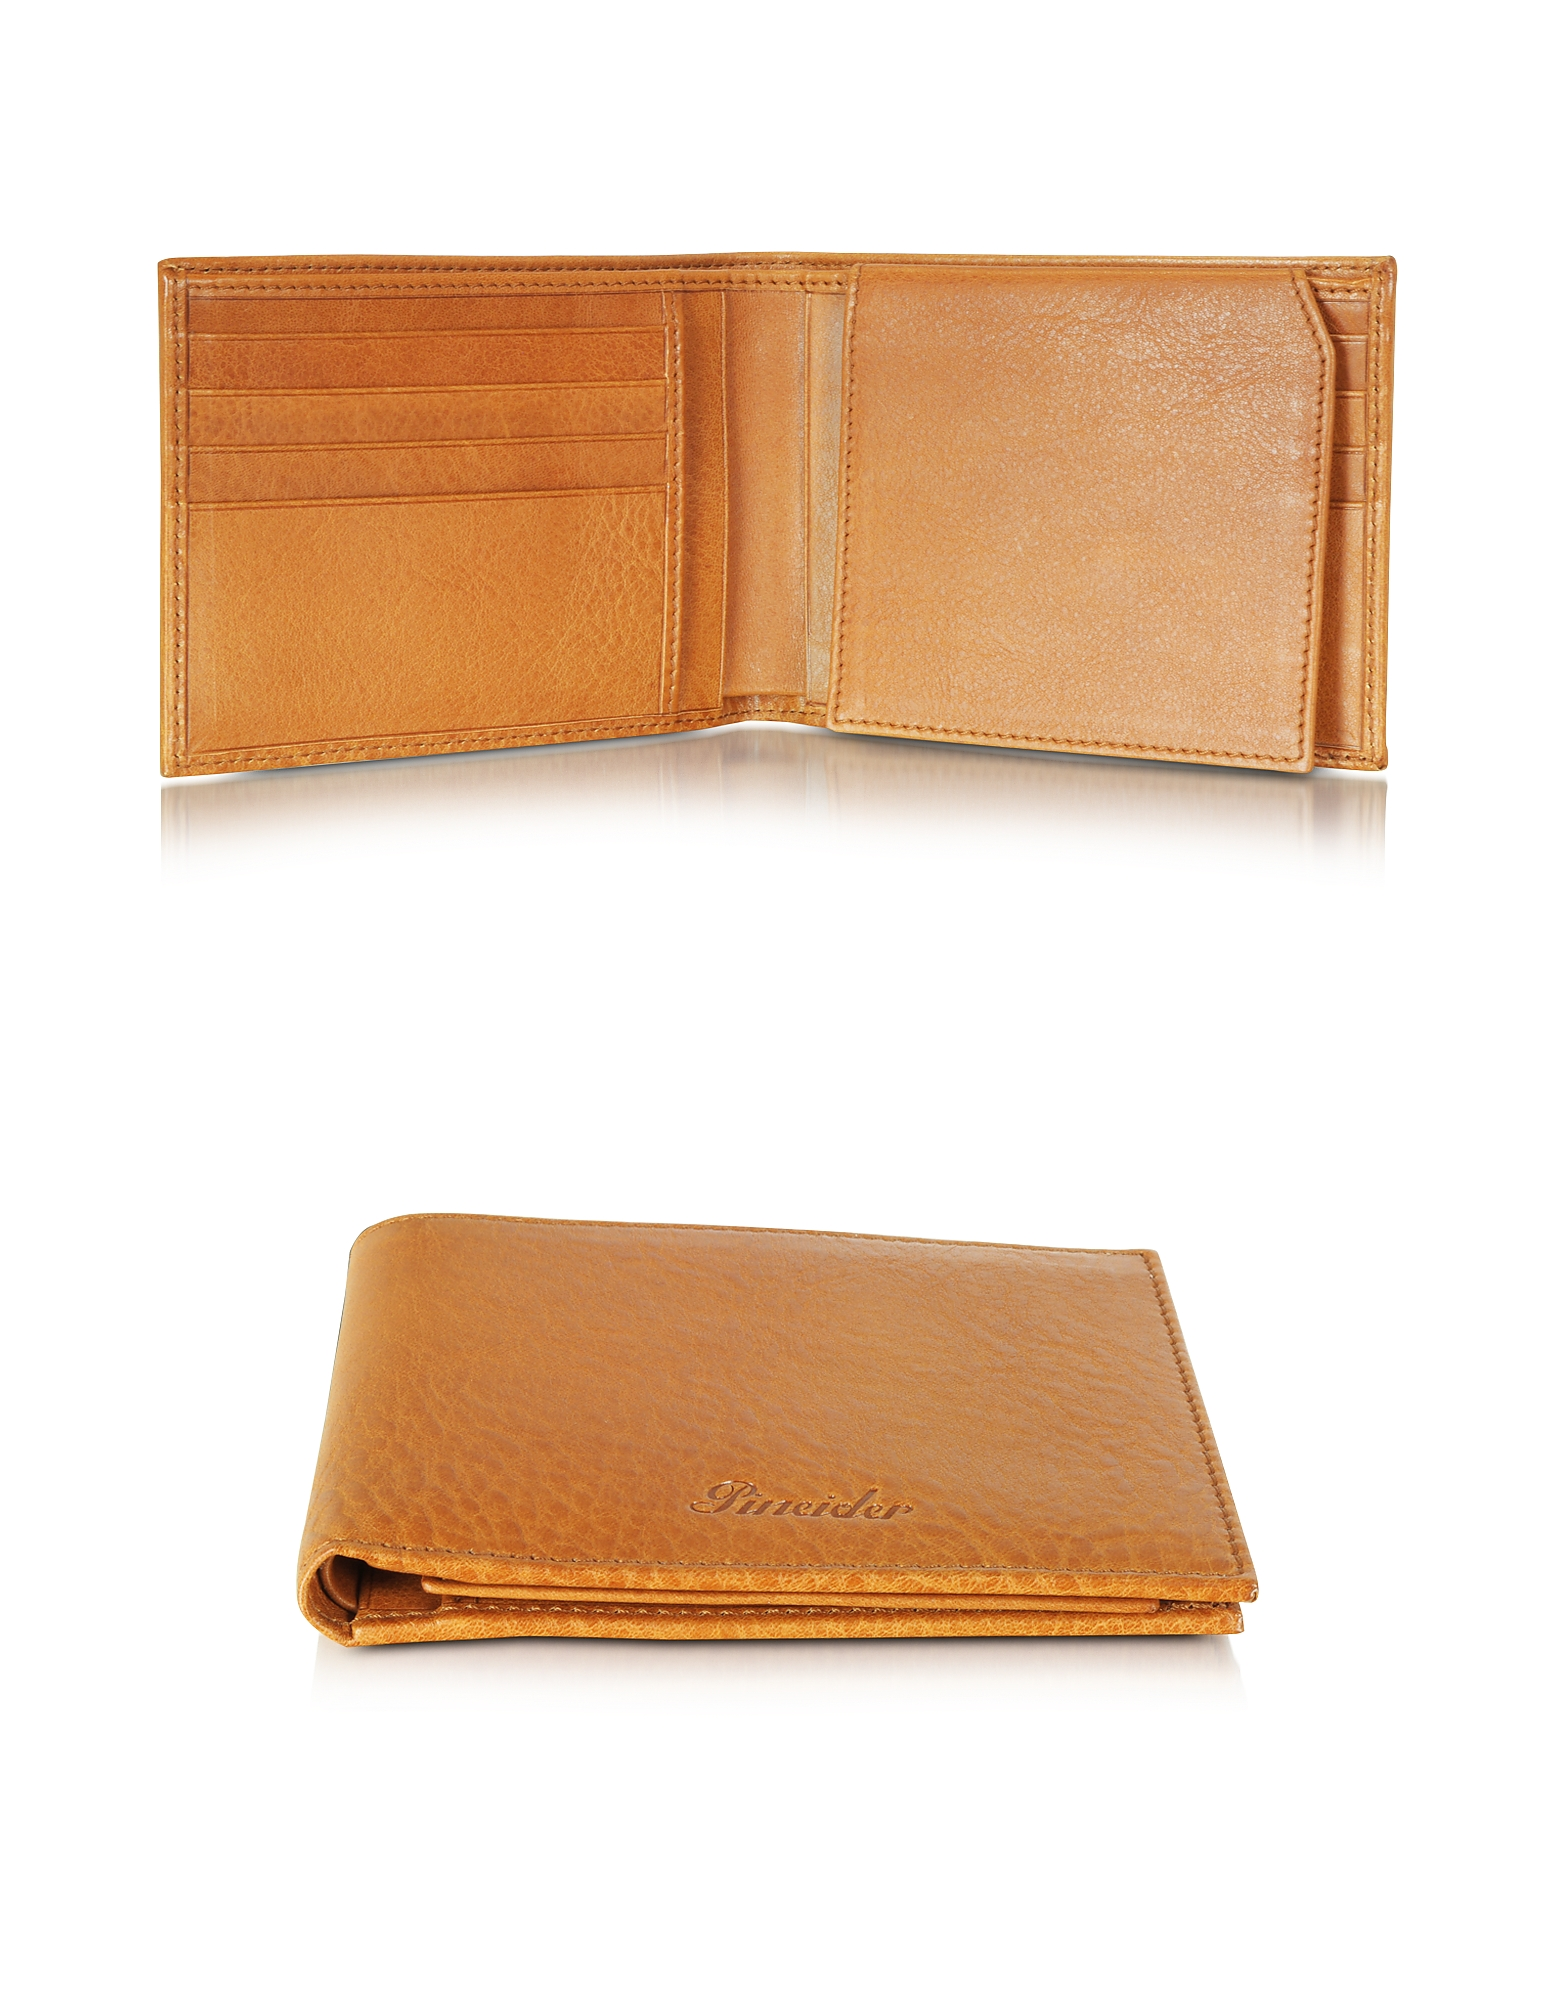 Pineider Wallets, Country Cognac Leather Billfold Wallet w/Flap